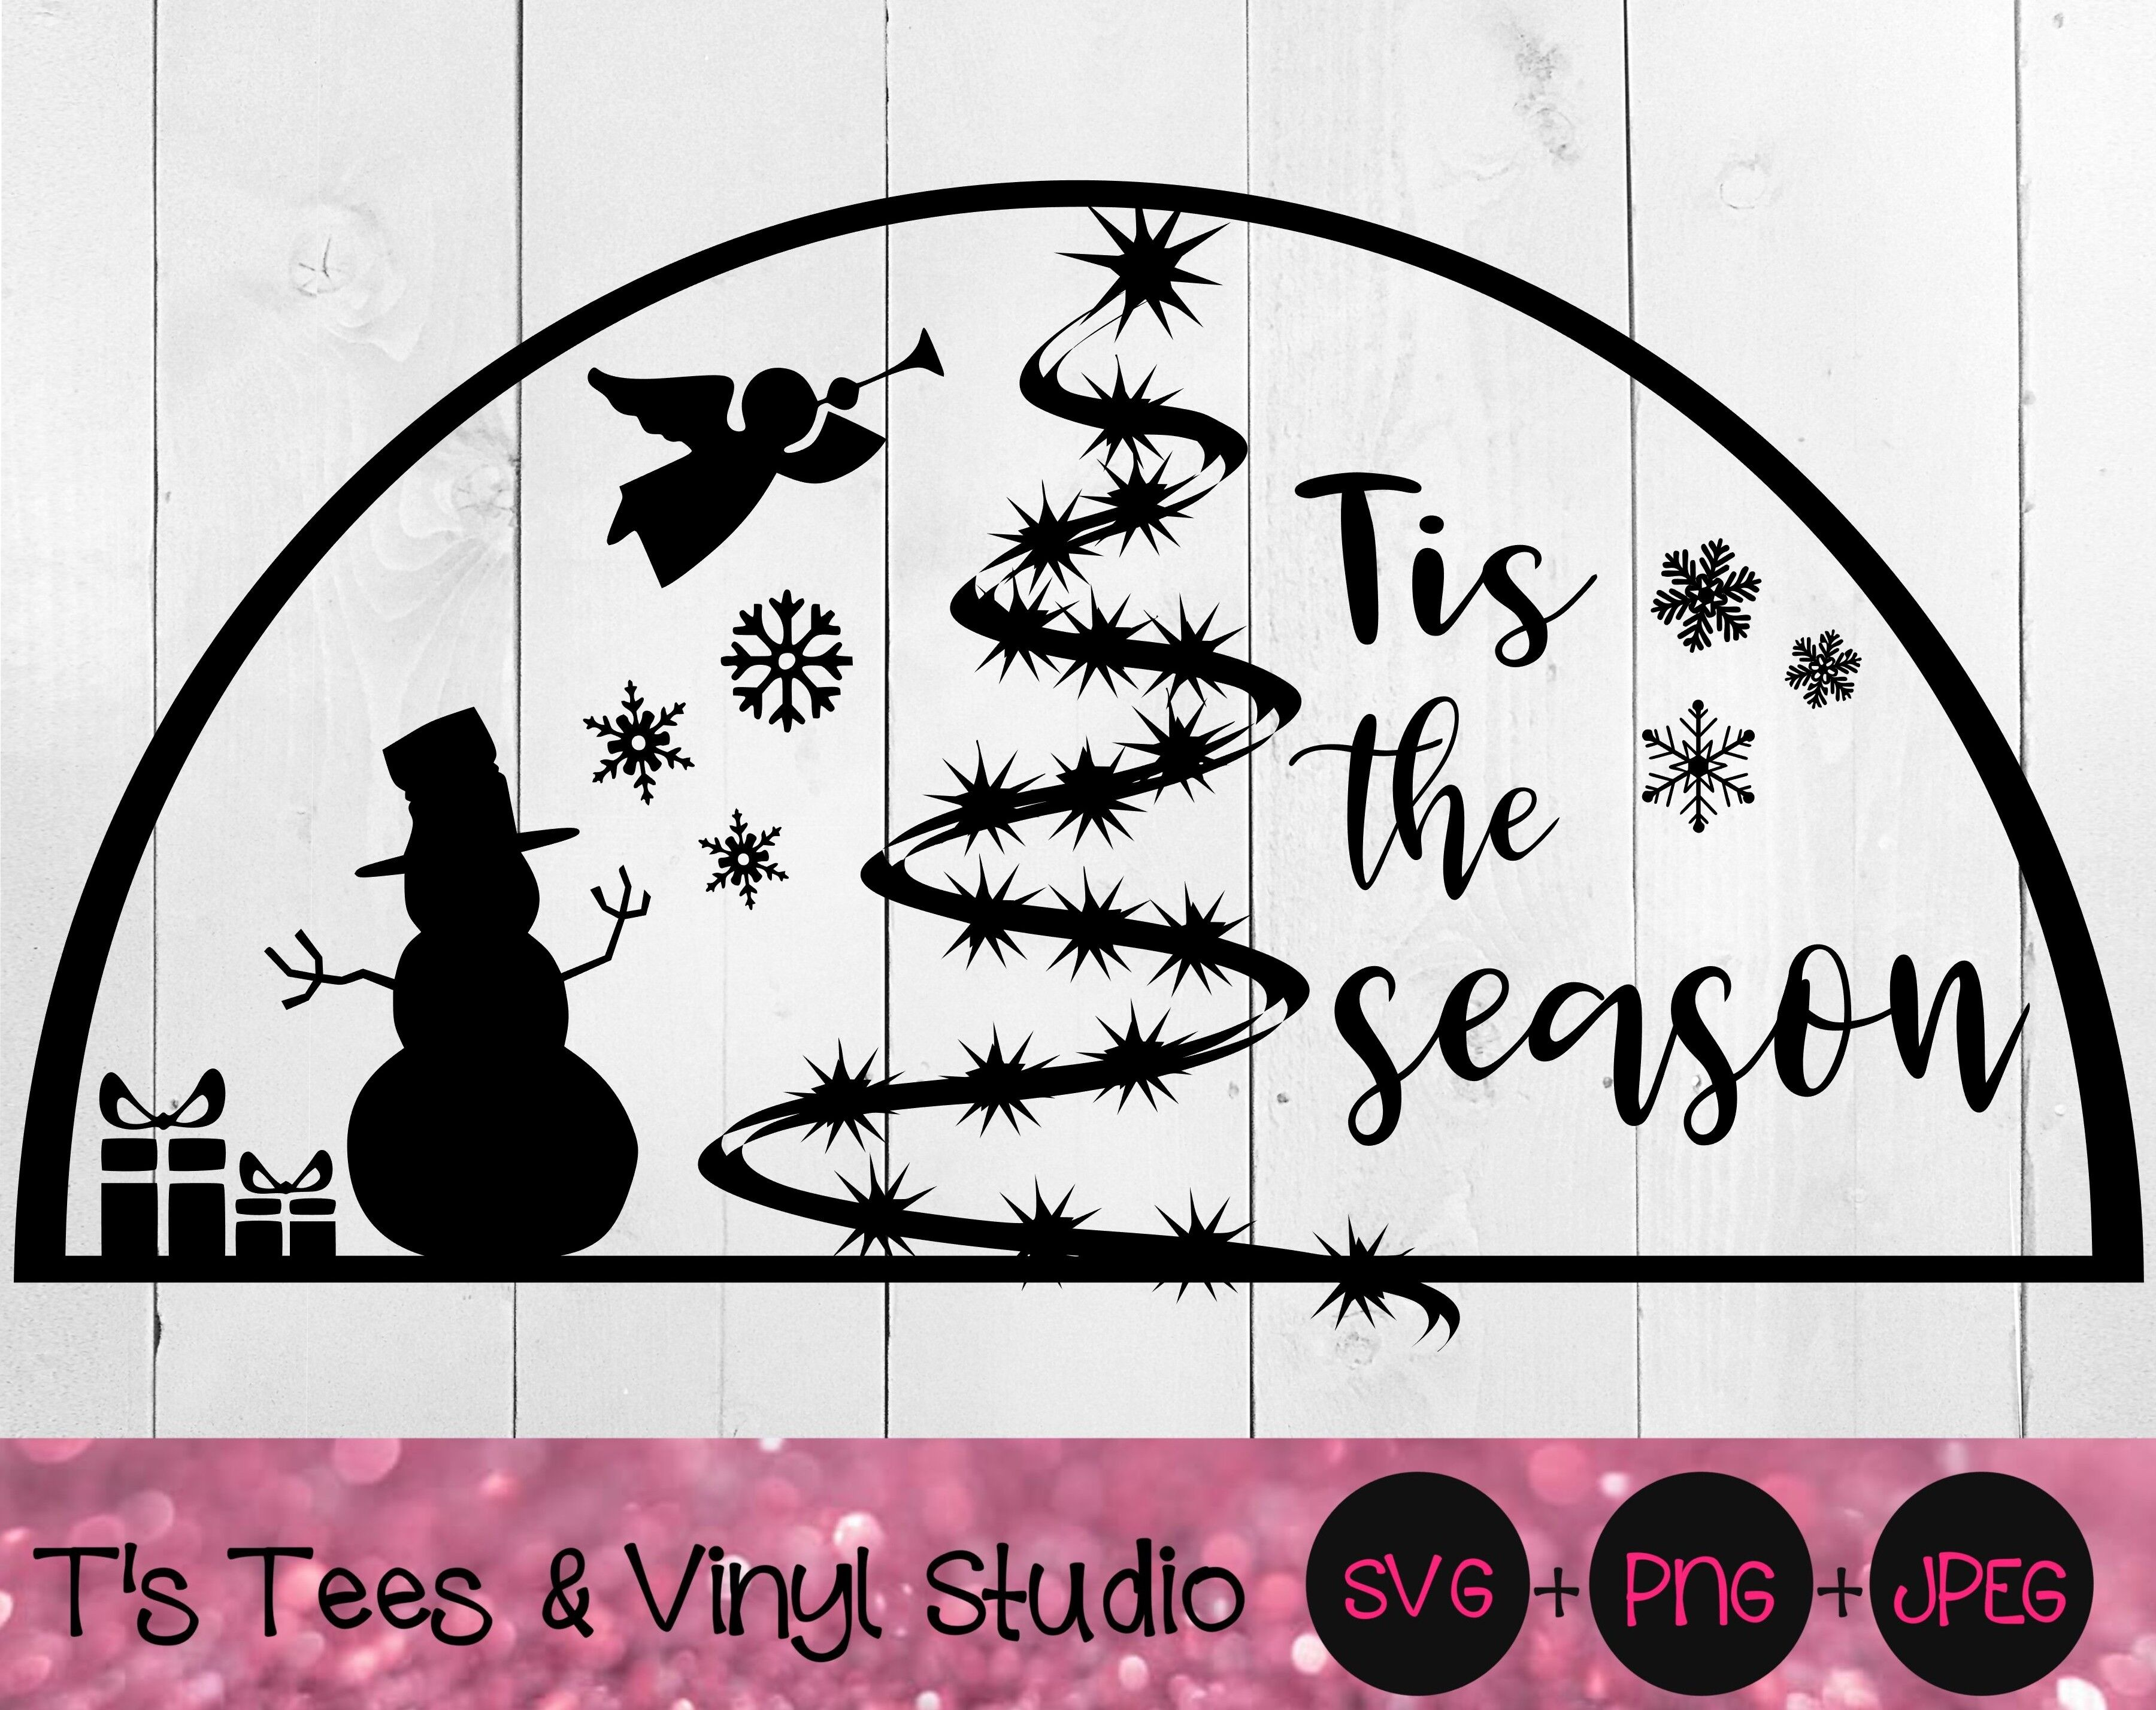 You will receive the file in following file formats: Tis The Season Svg Christmas Svg Snowglobe Snow Globe Merry Christ By T S Tees Vinyl Studio Thehungryjpeg Com